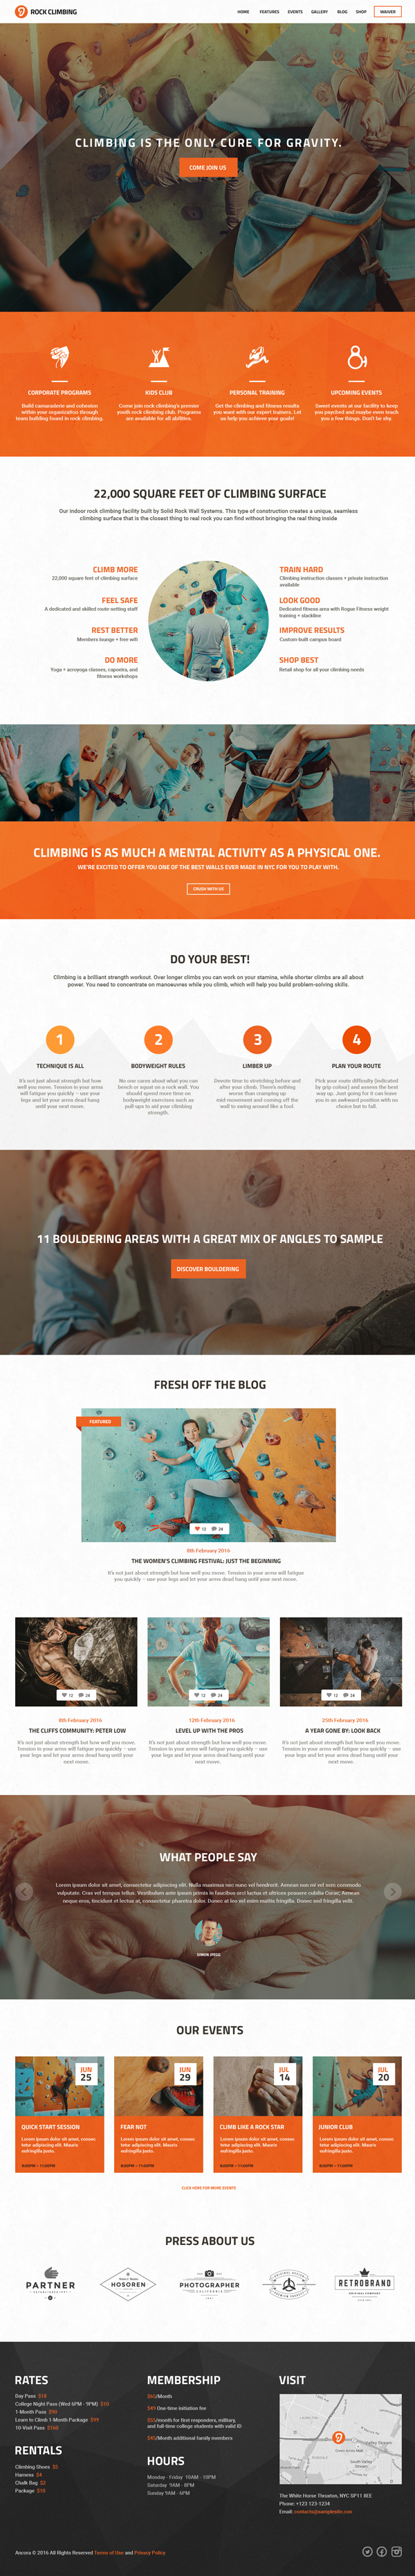 Rock Climbing - Climbing Wall & Sport Club WP Theme